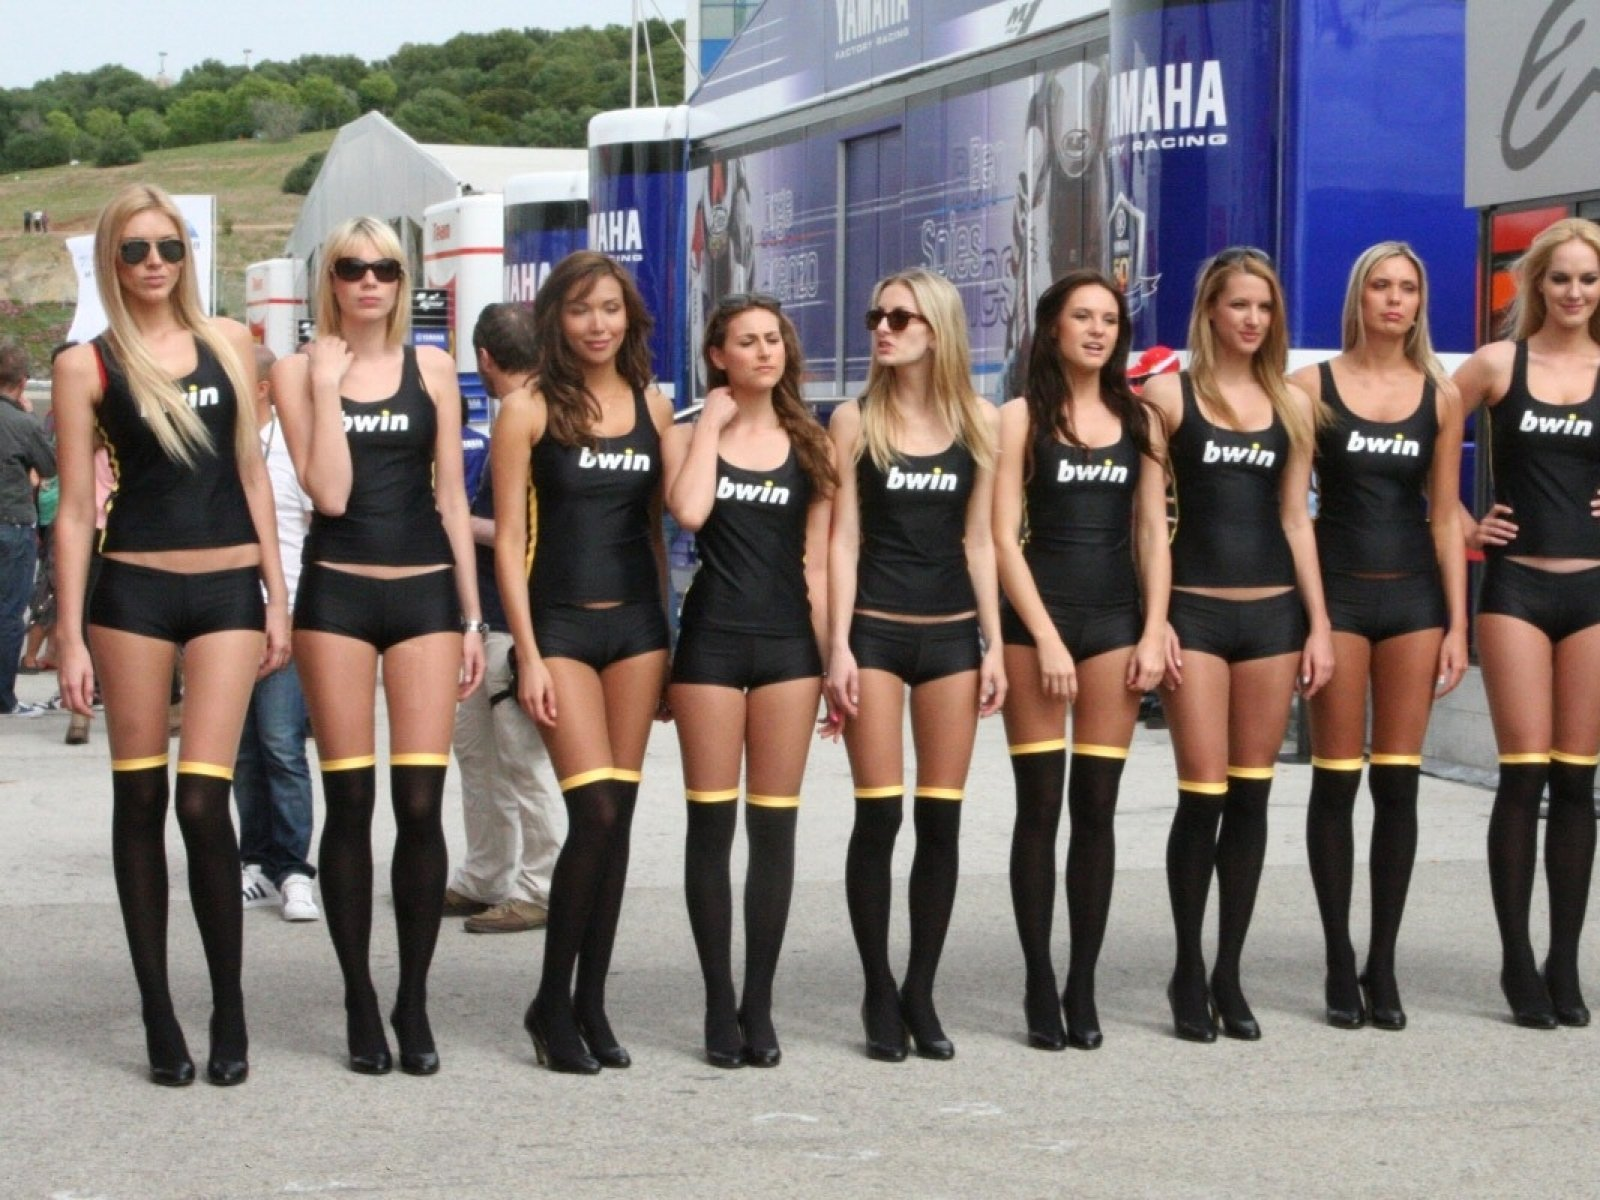 grid girls hd wallpapers - photo #5